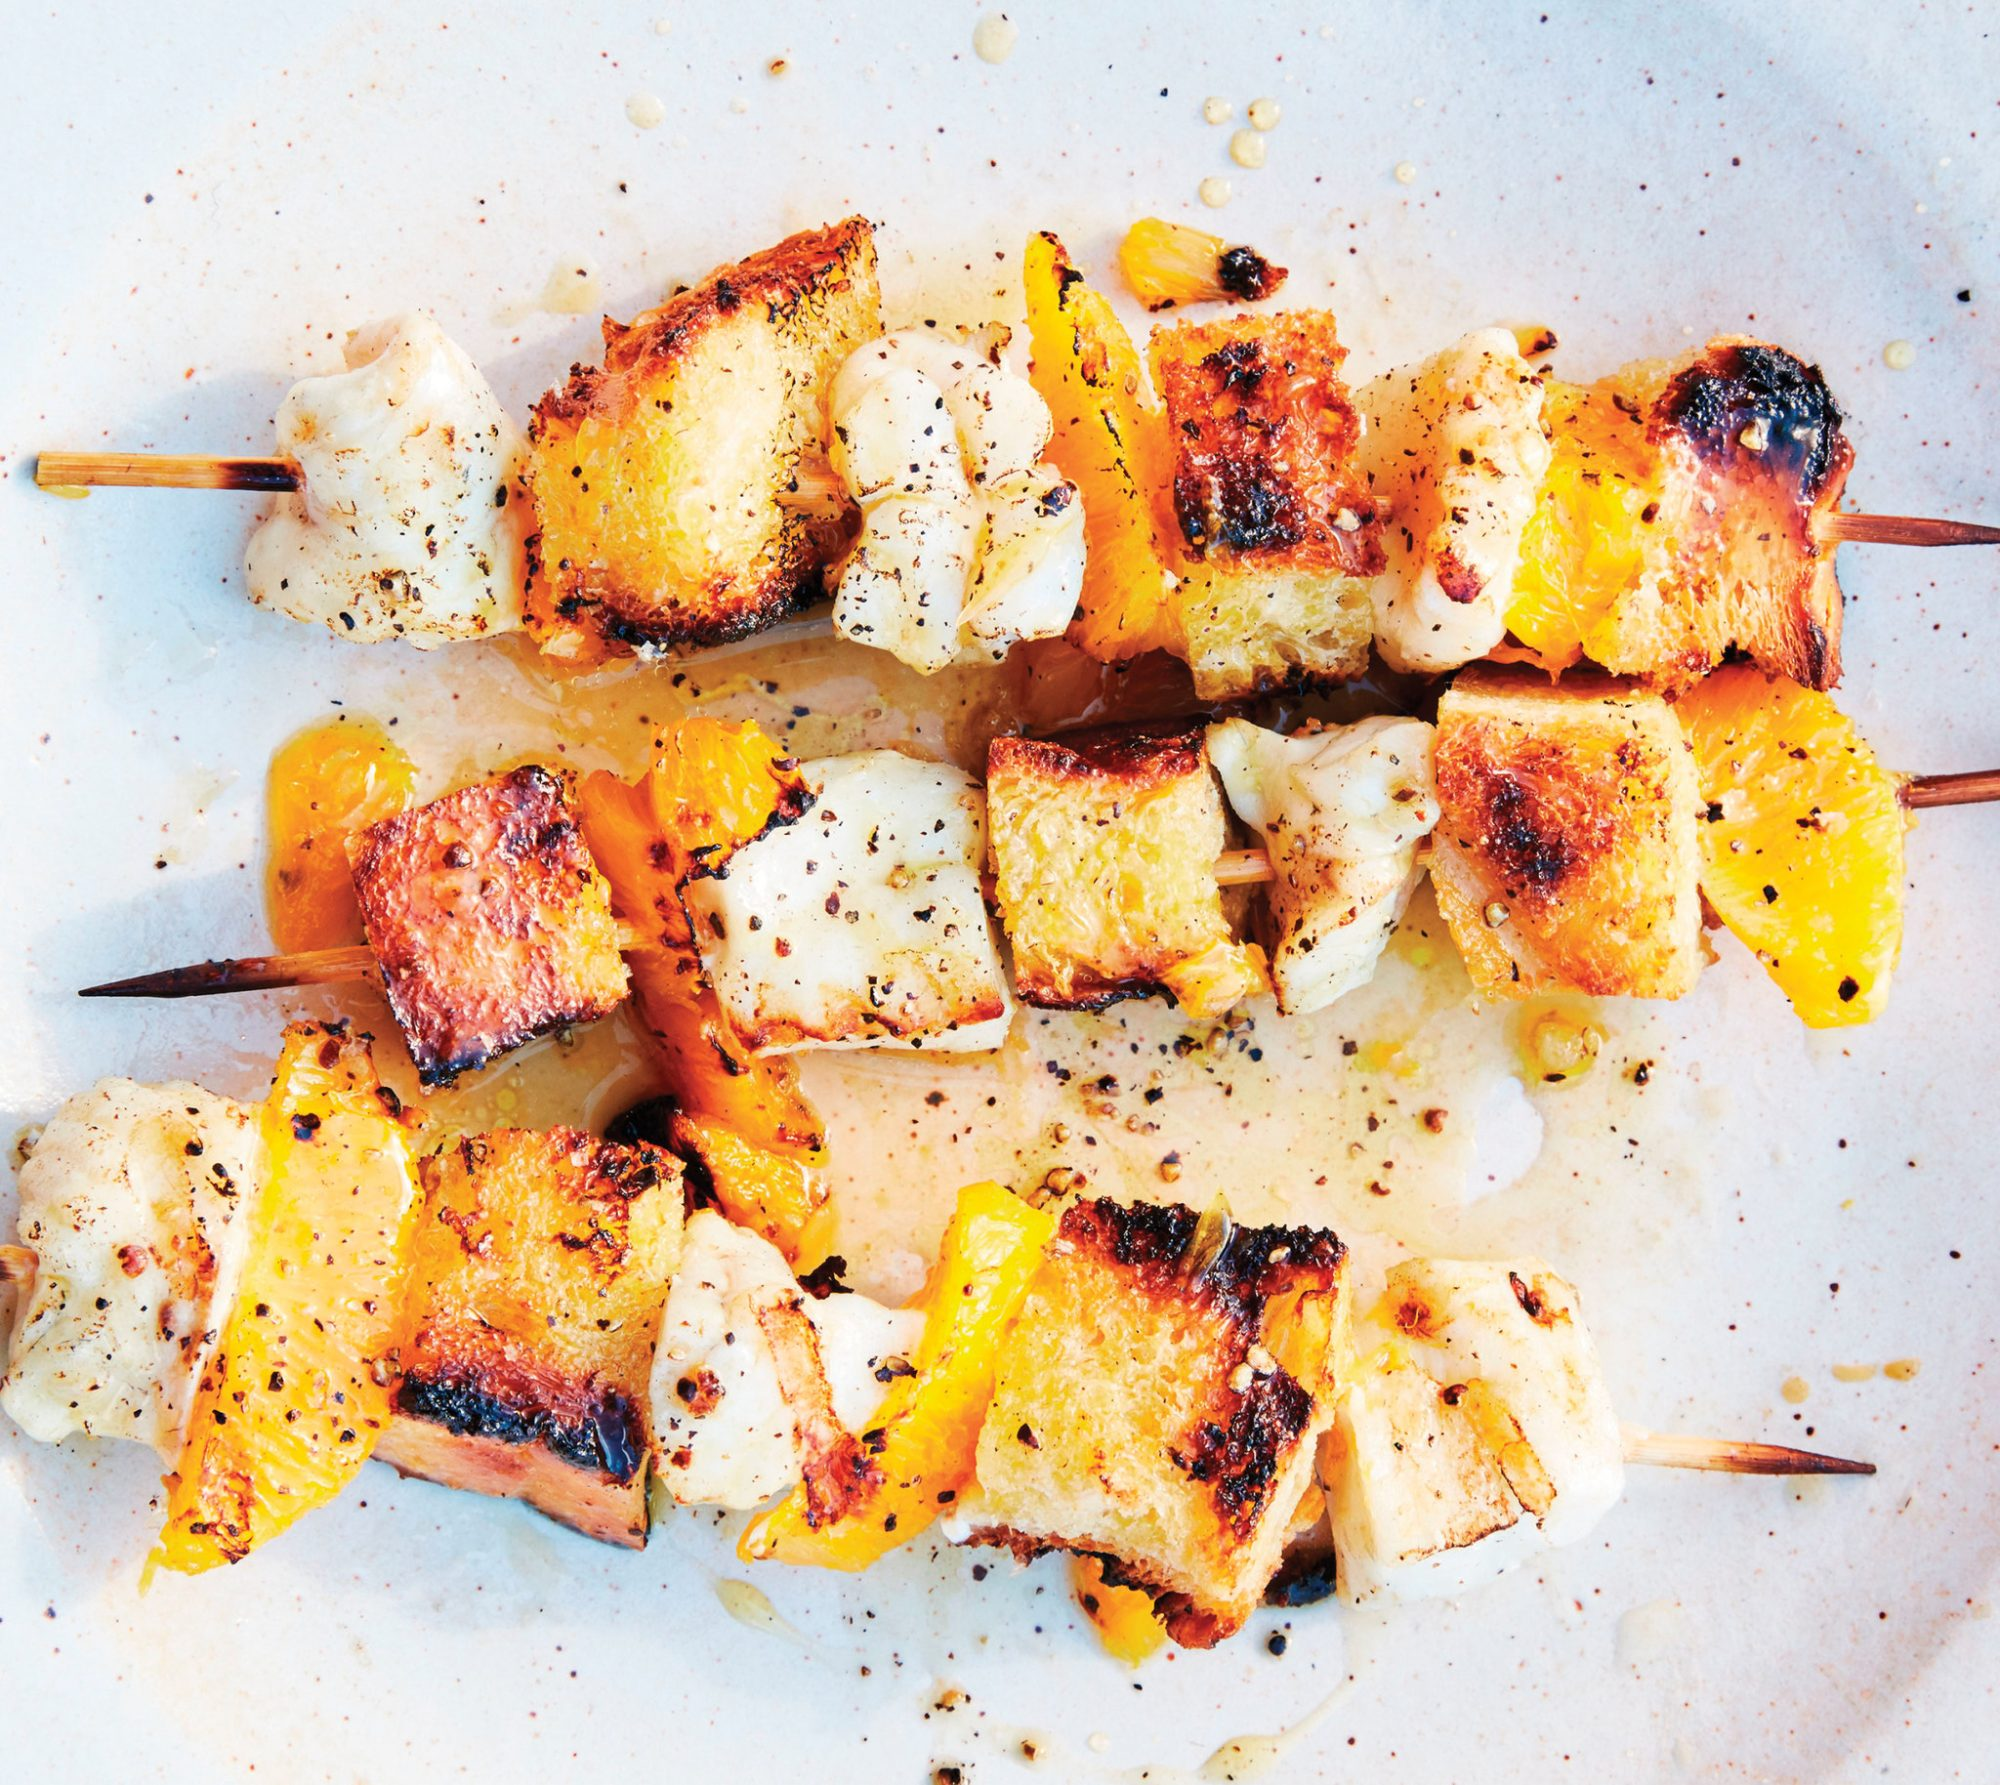 Seafood Skewers with Croutons and Orange